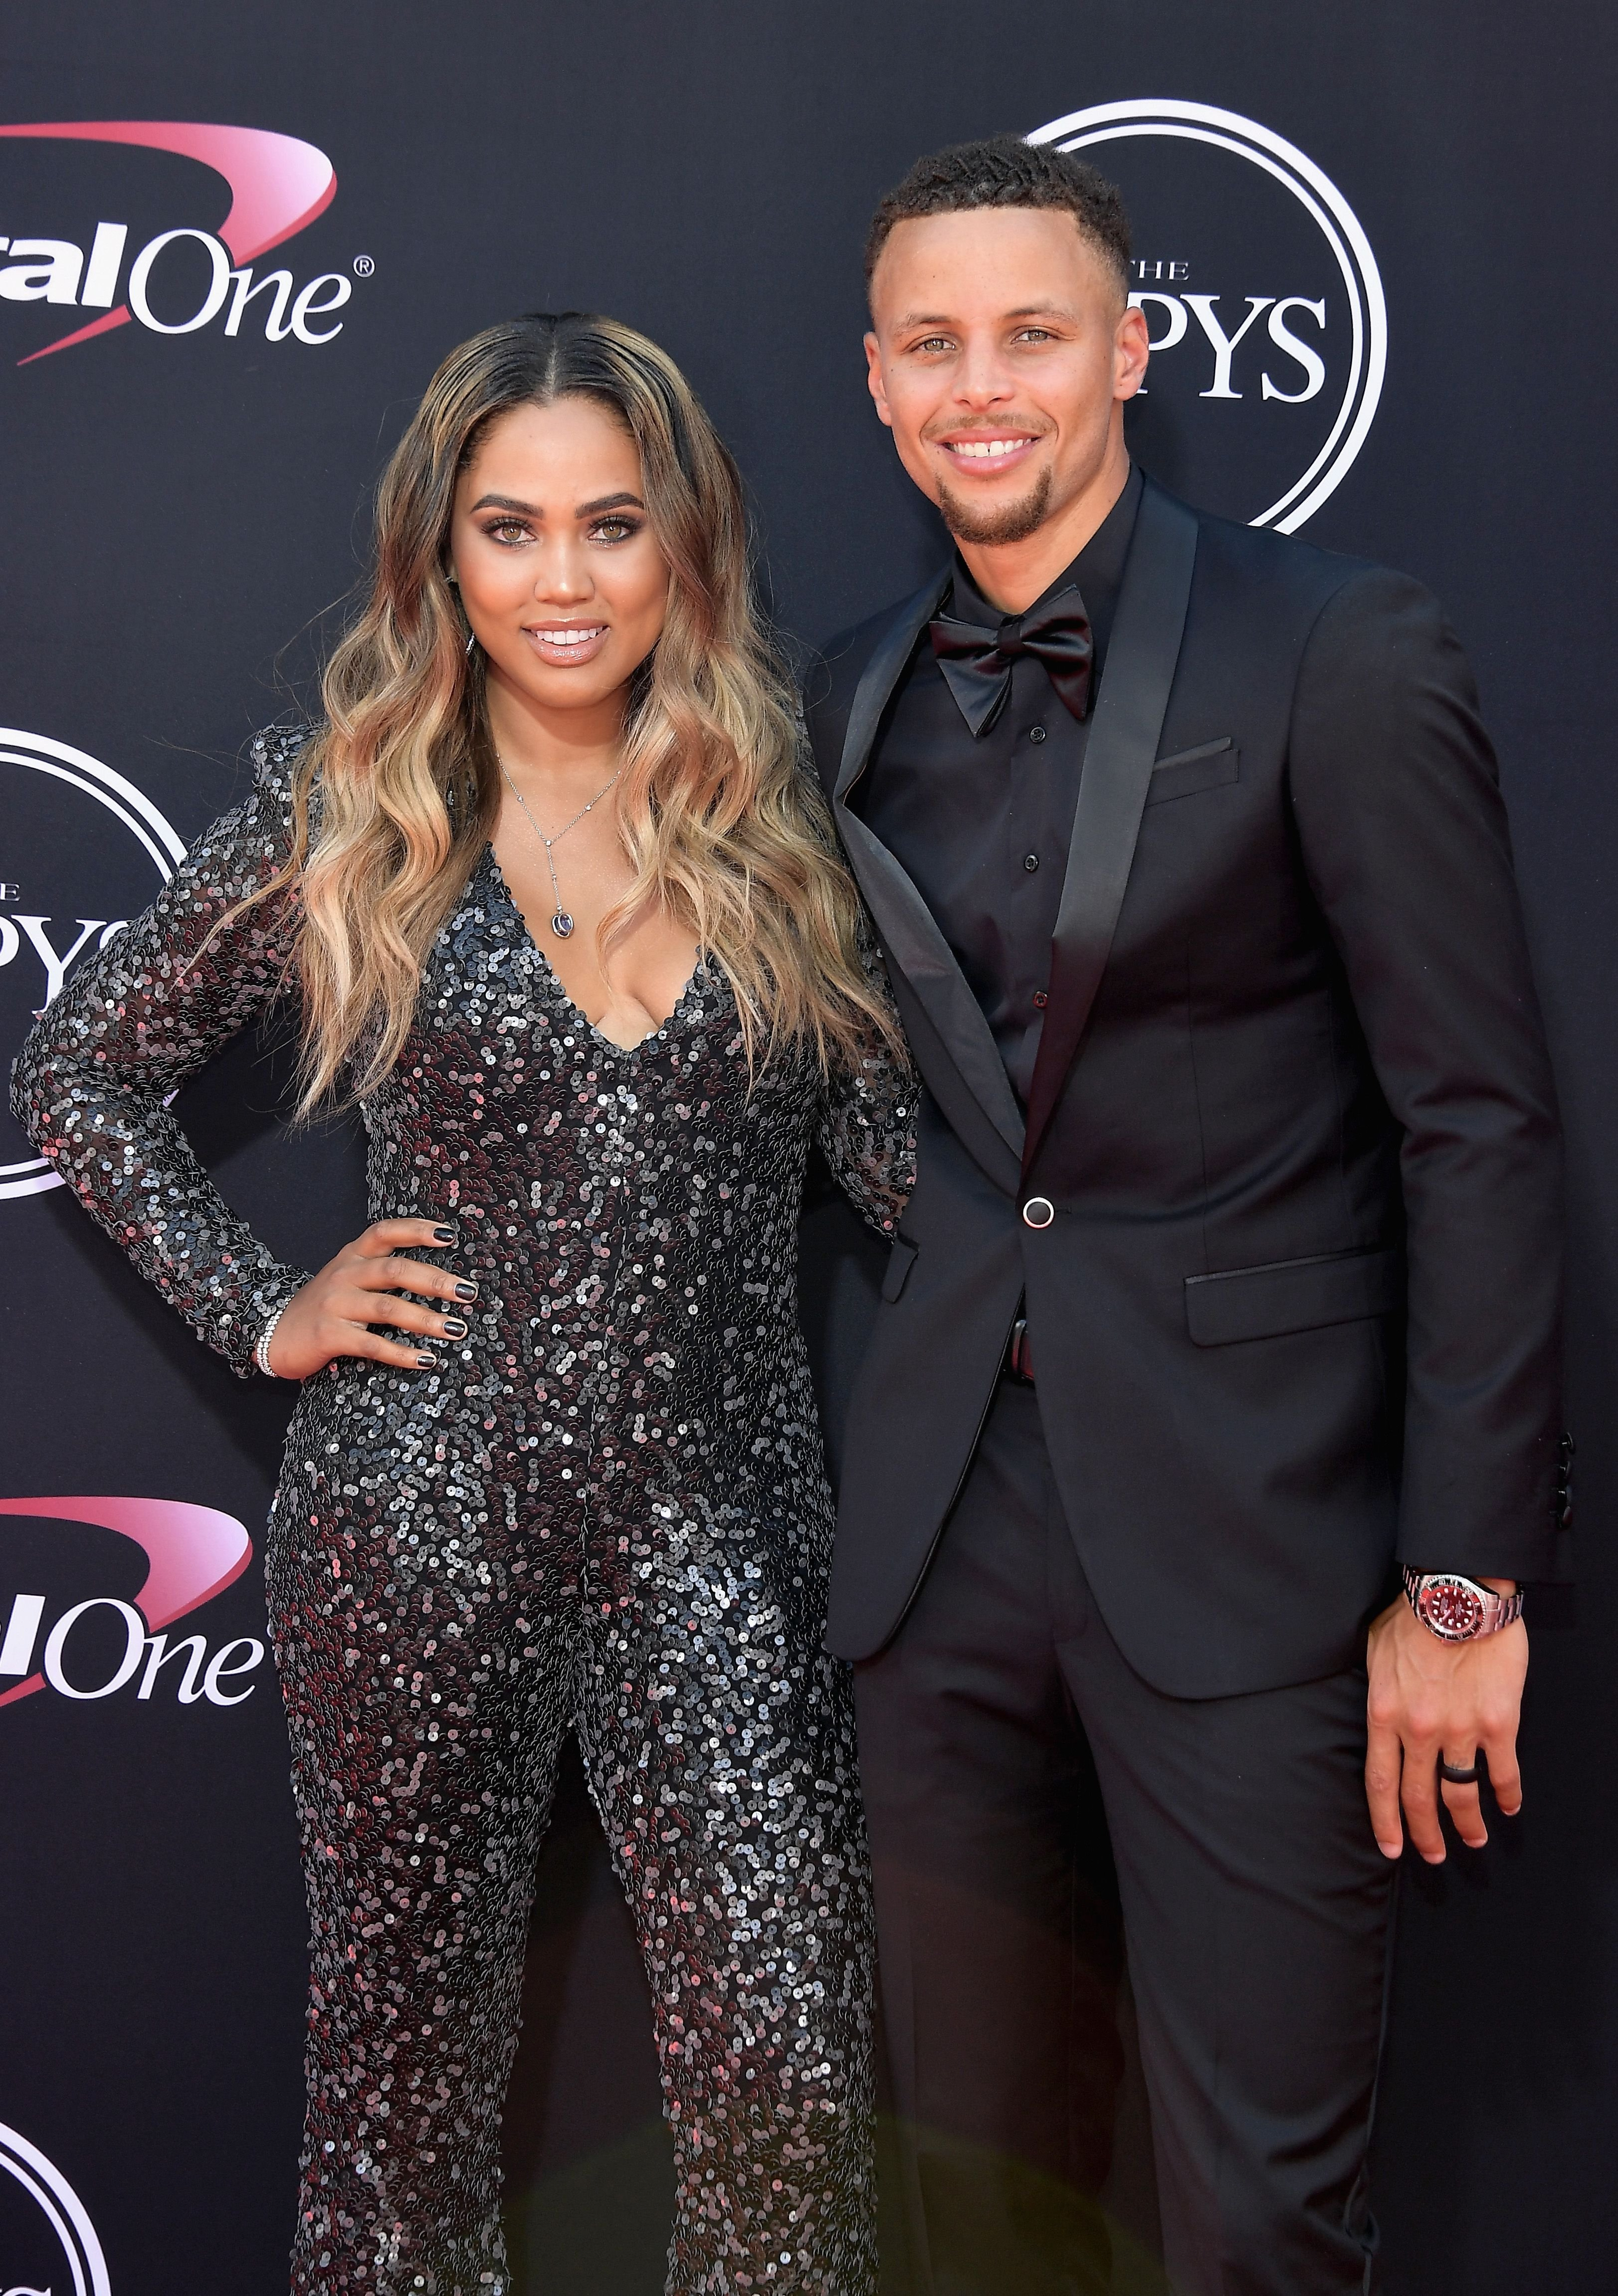 NBA player Steph Curry and Ayesha Curry at the 2017 ESPYS at Microsoft Theater on July 12, 2017 | Photo: Getty Images